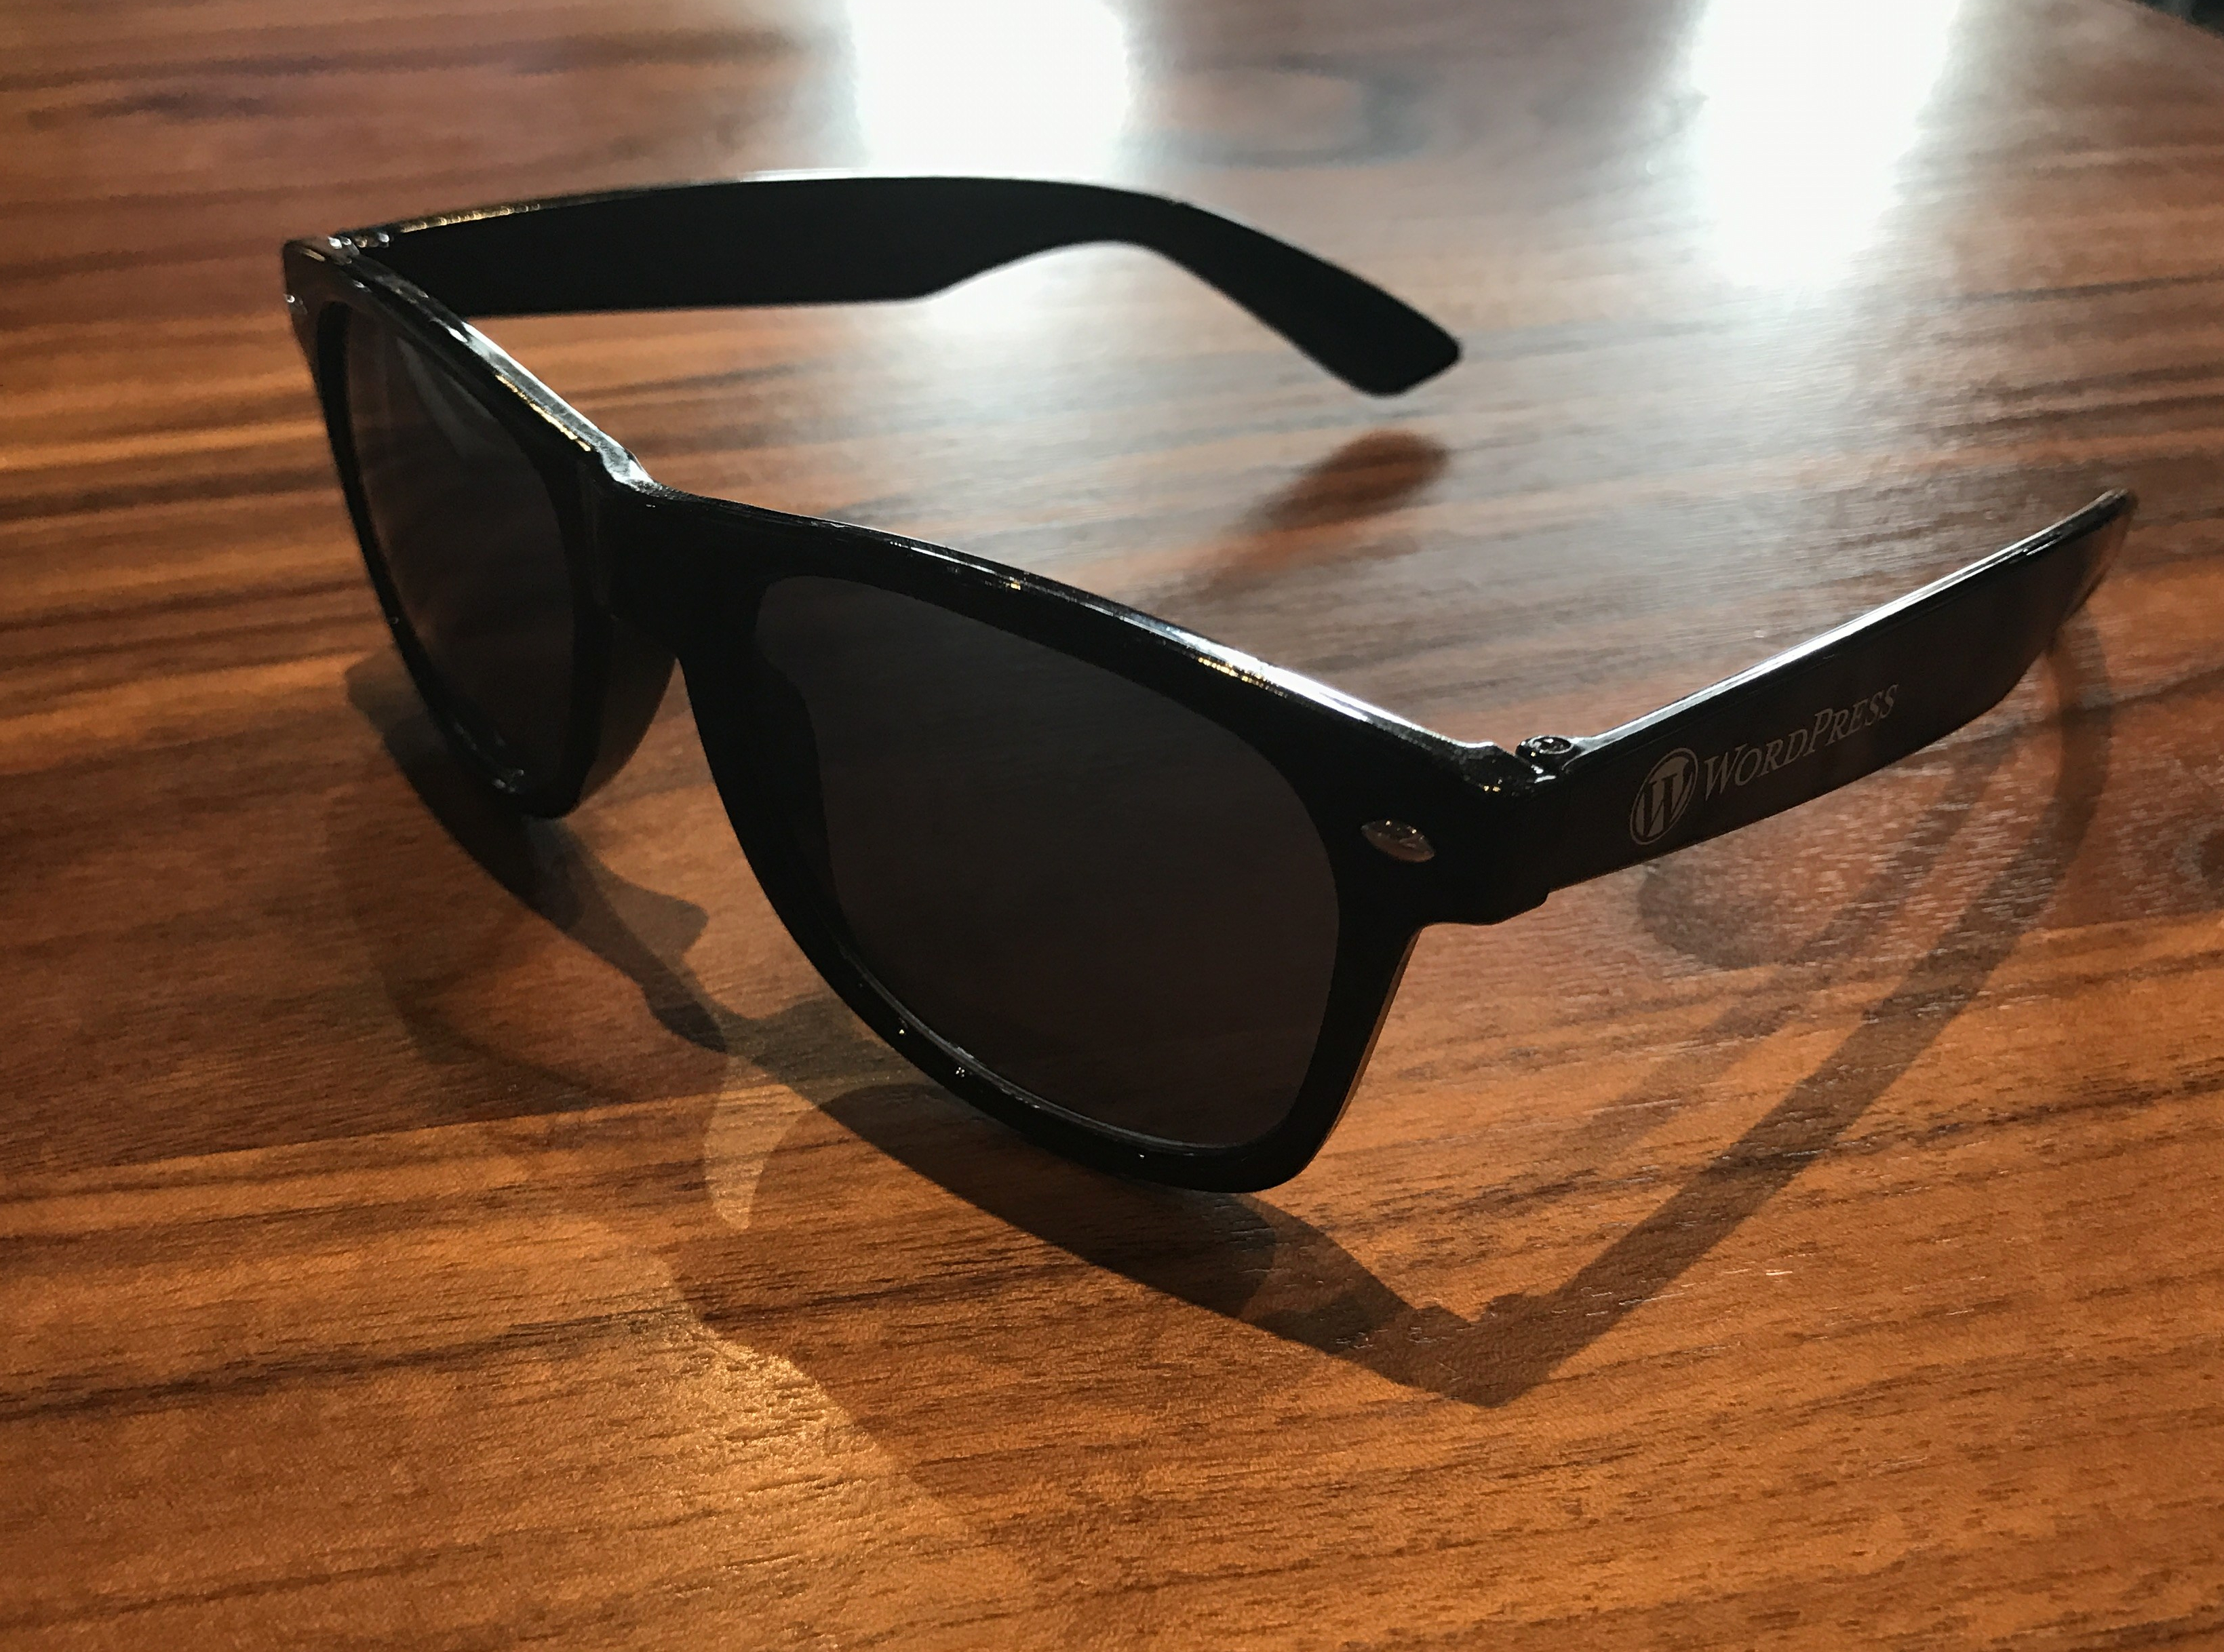 WordPress Sunglasses in Black